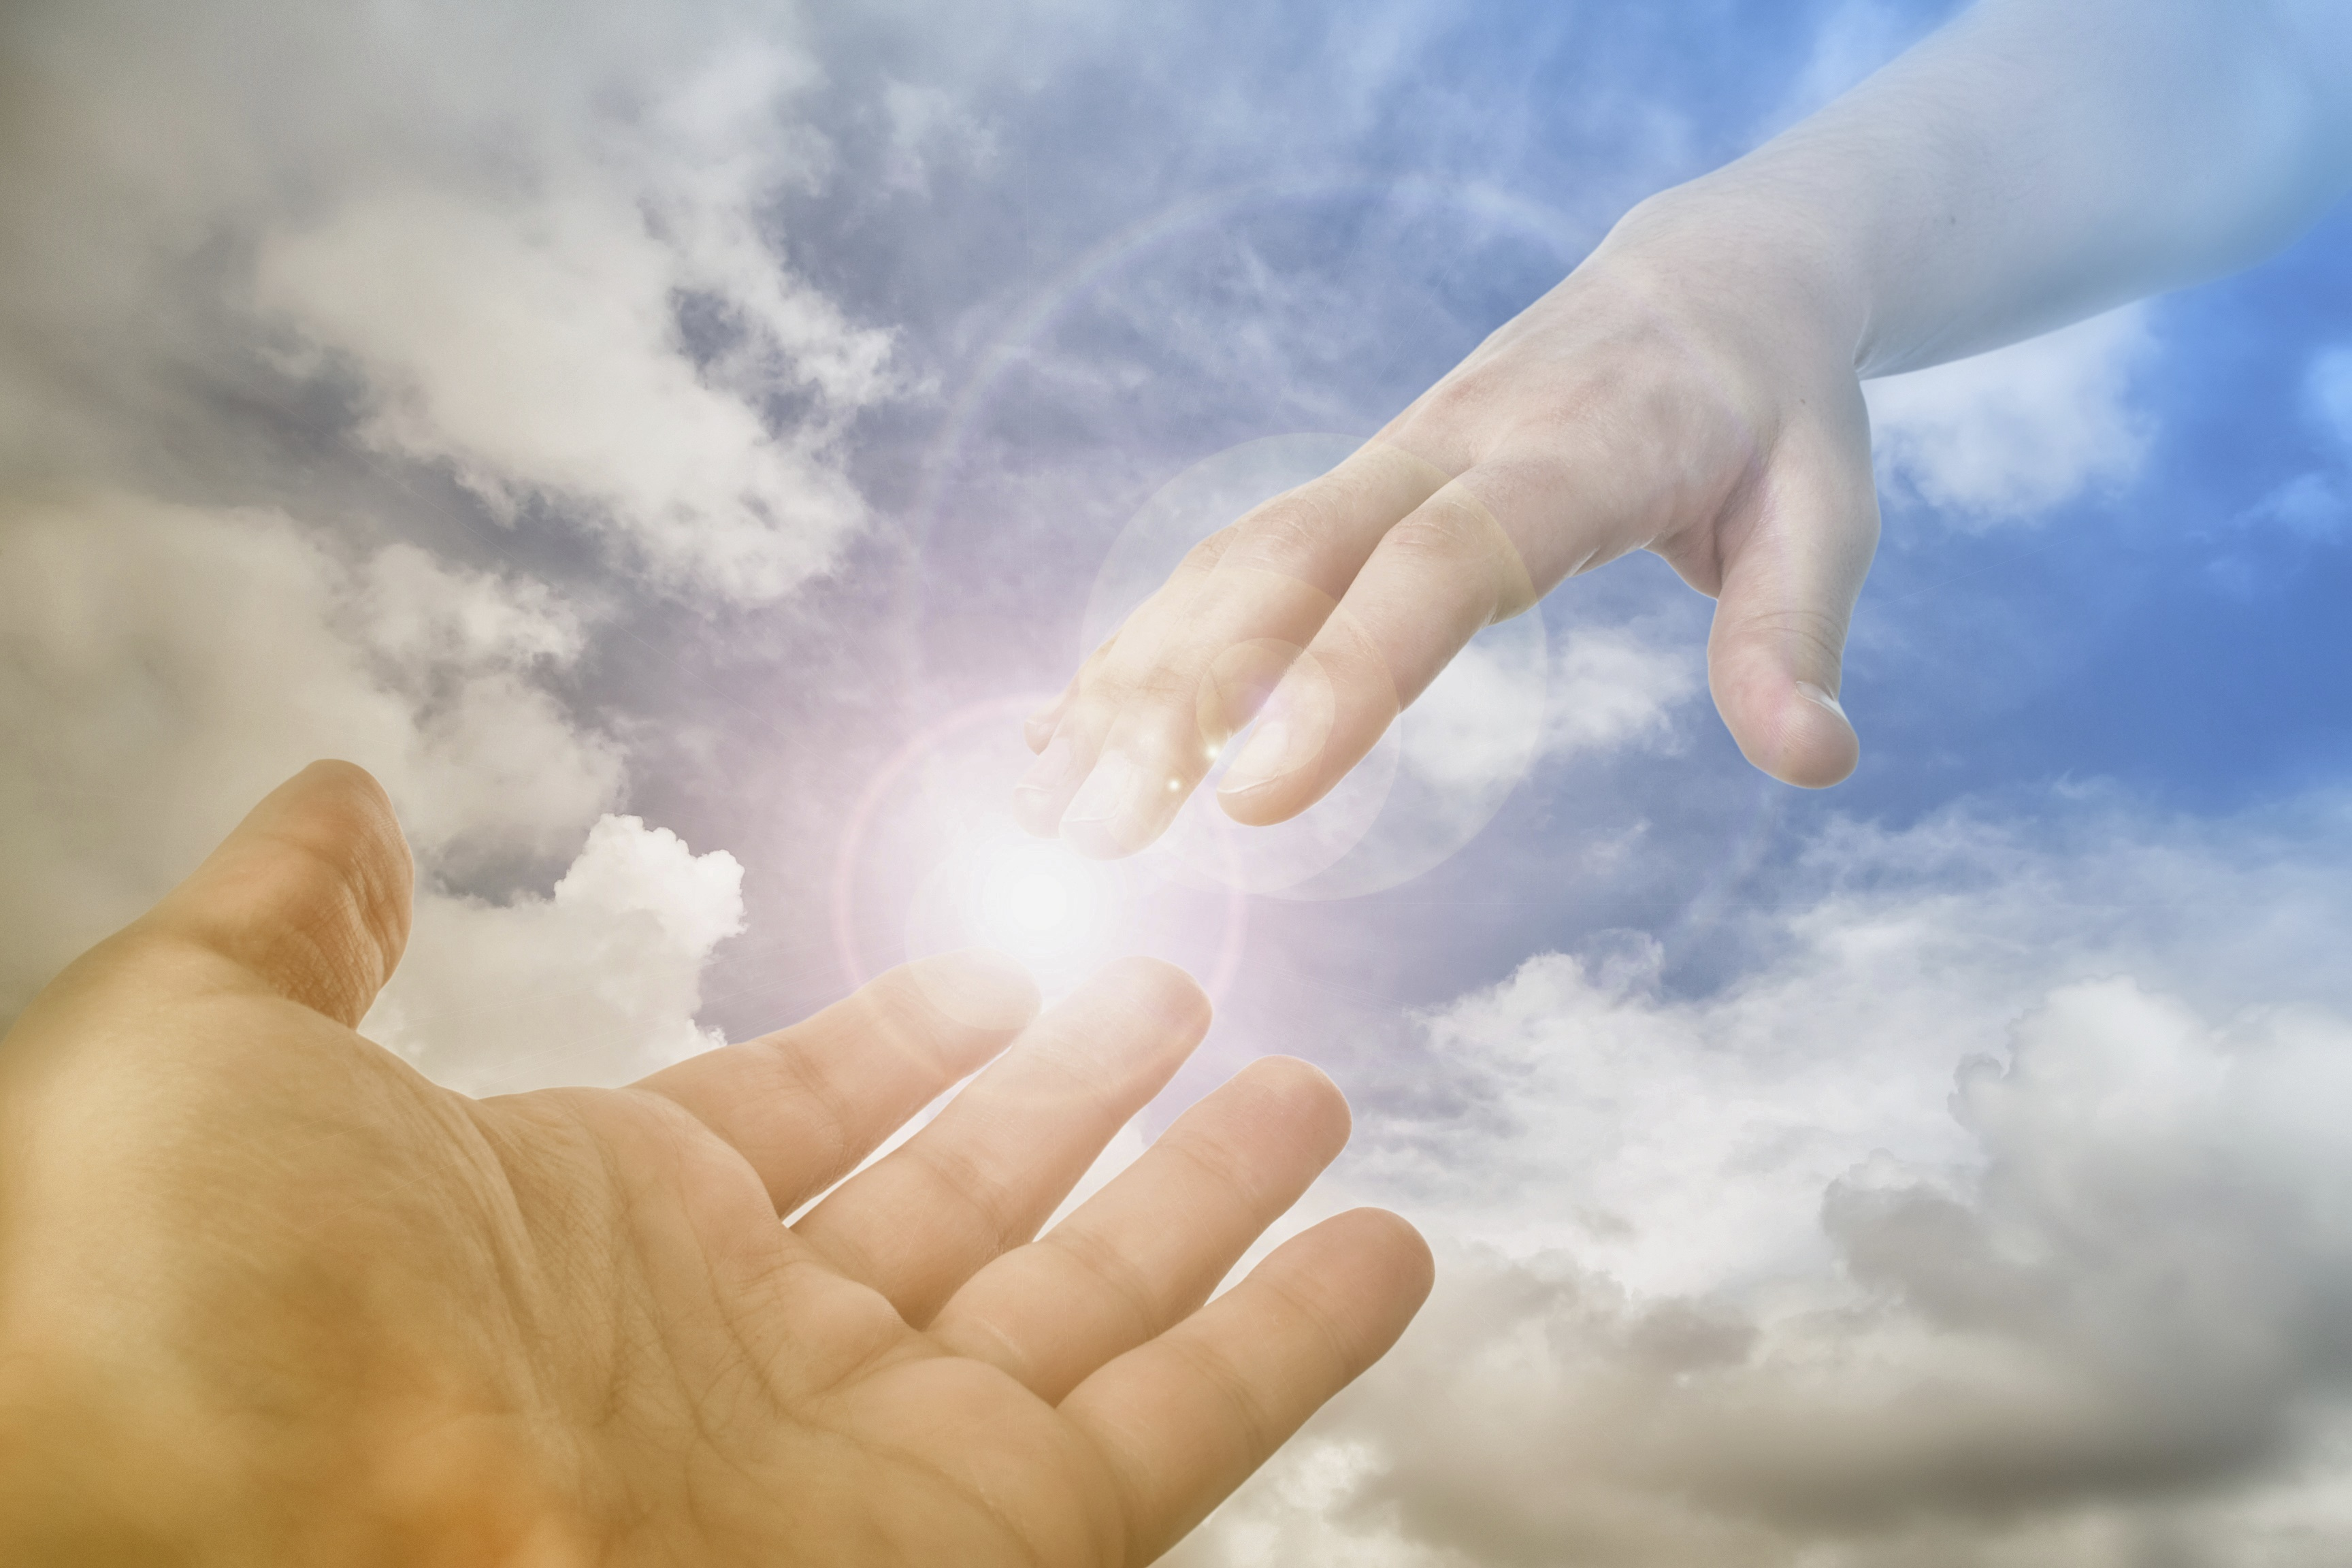 gods-hand-reaching-out-to-man